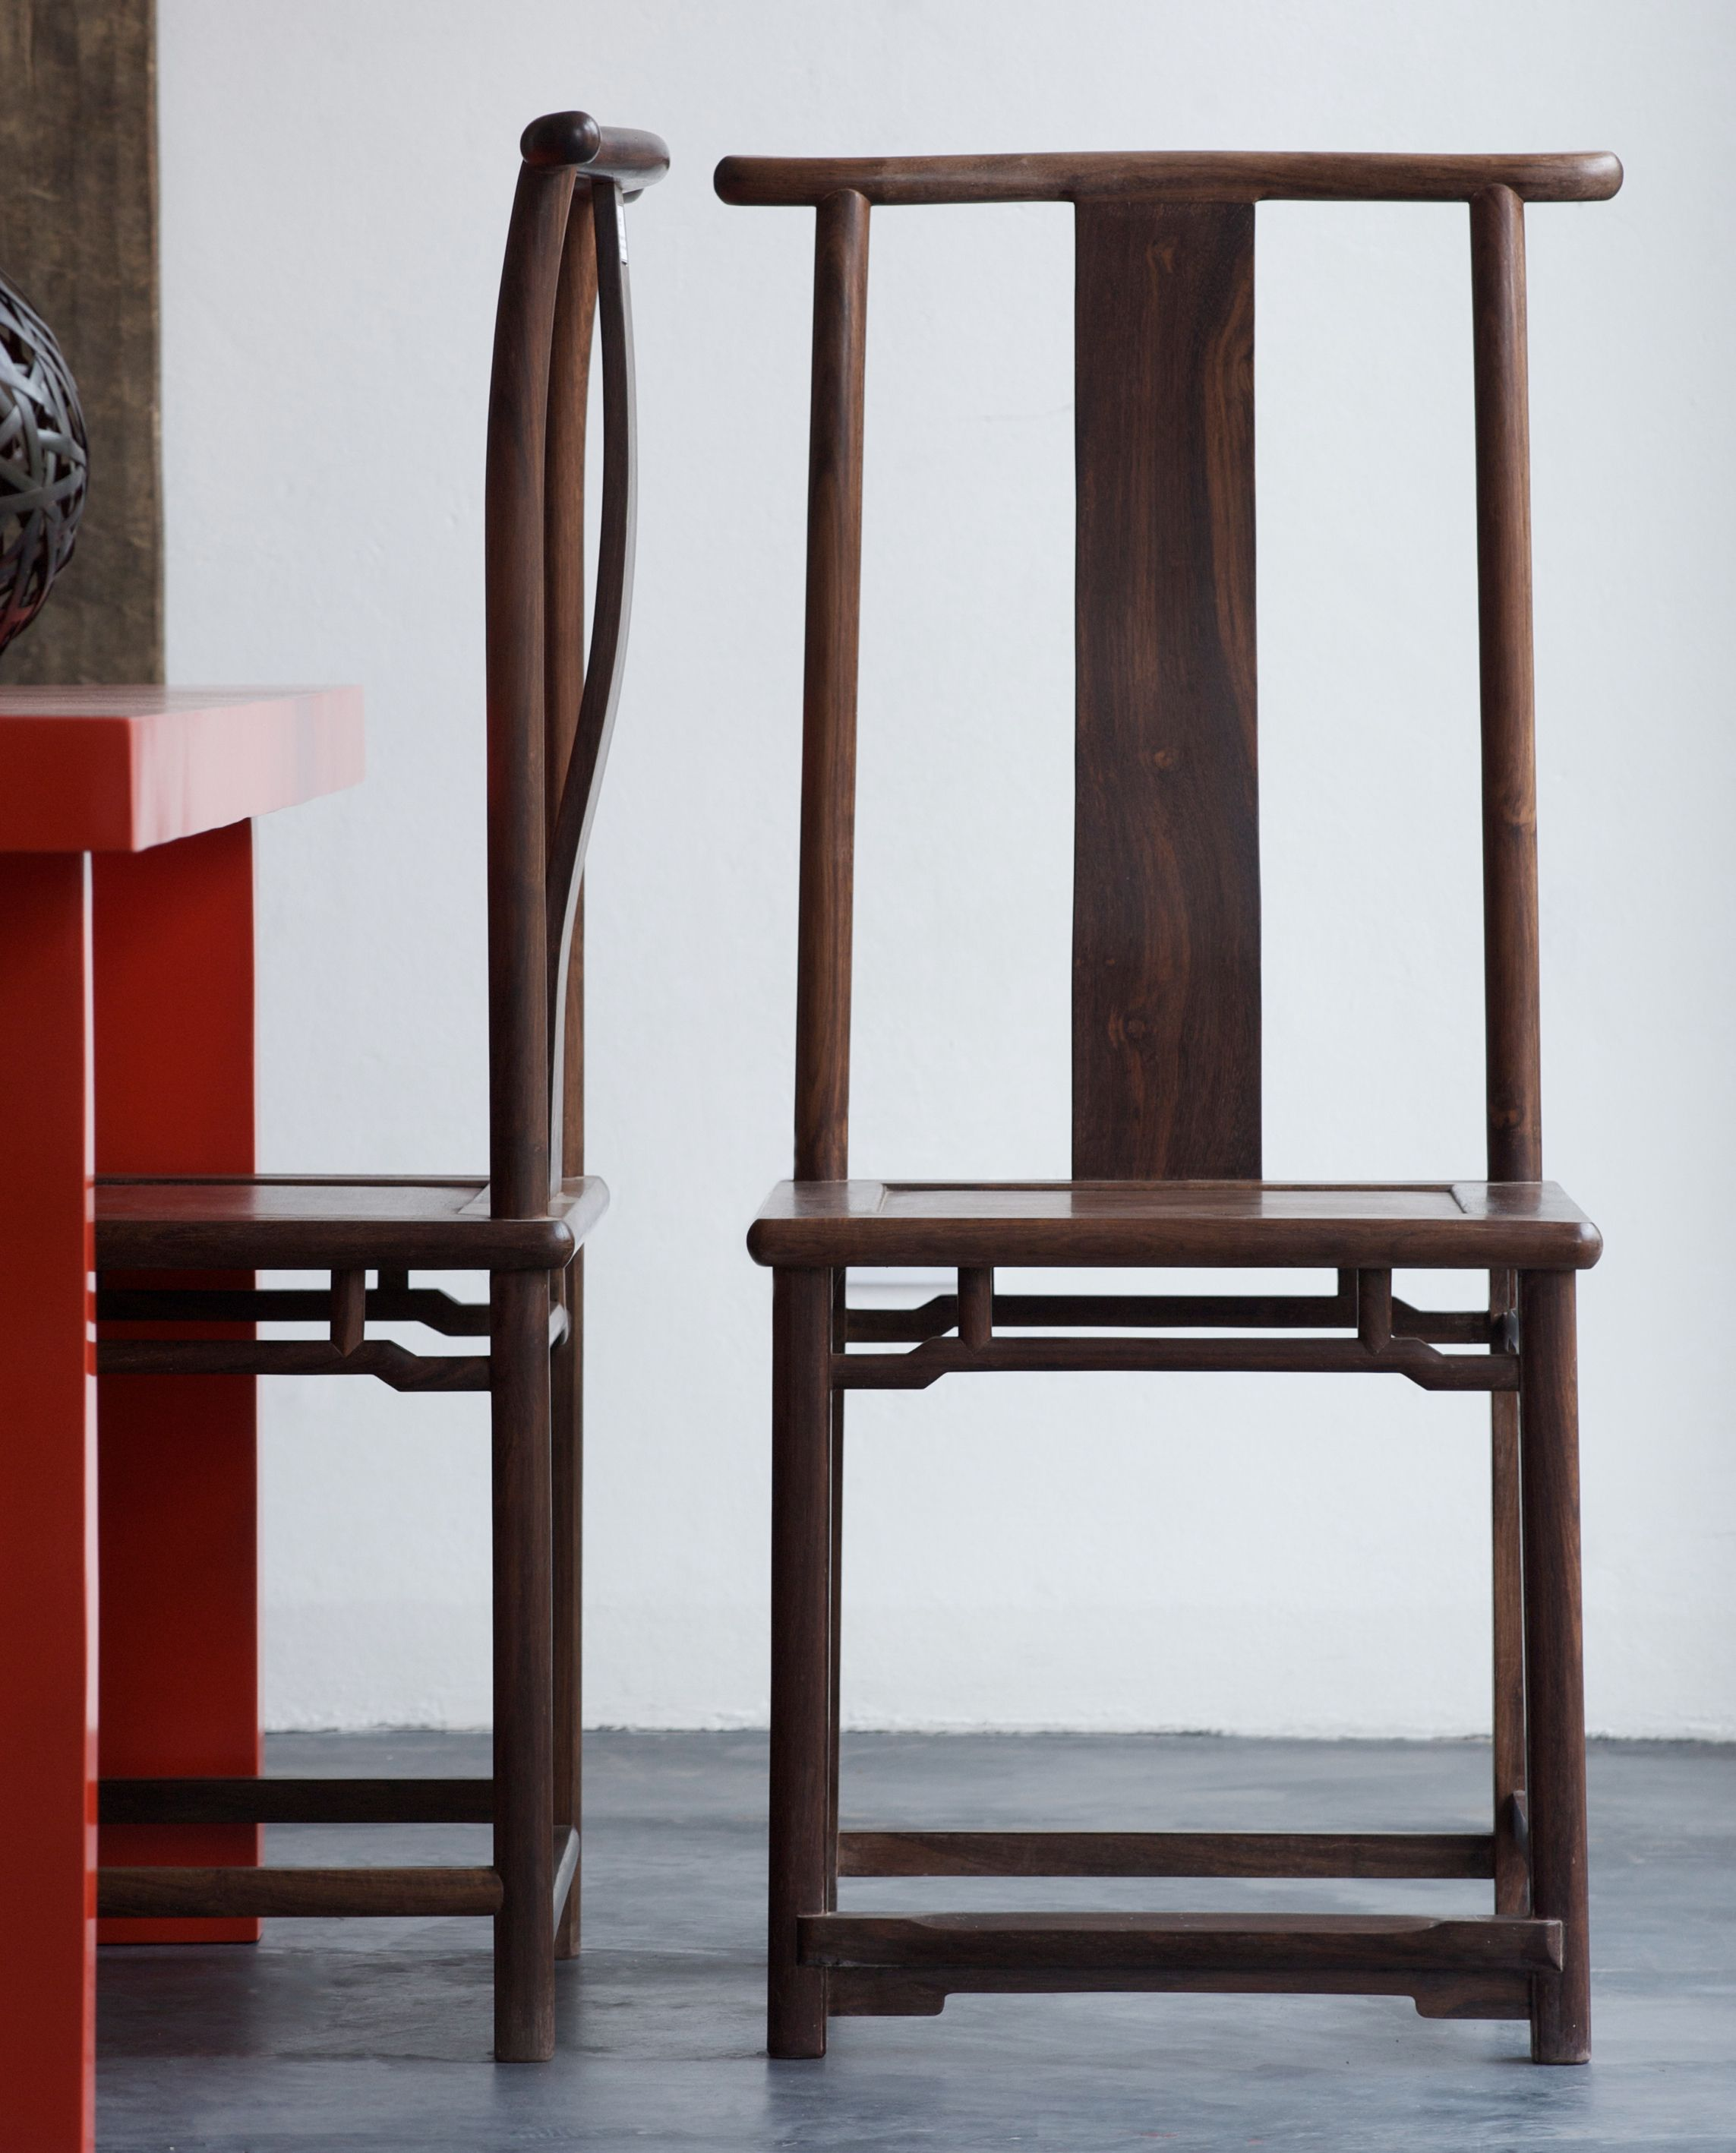 e2090f4be3 ming chair at Module 7  asiandesign